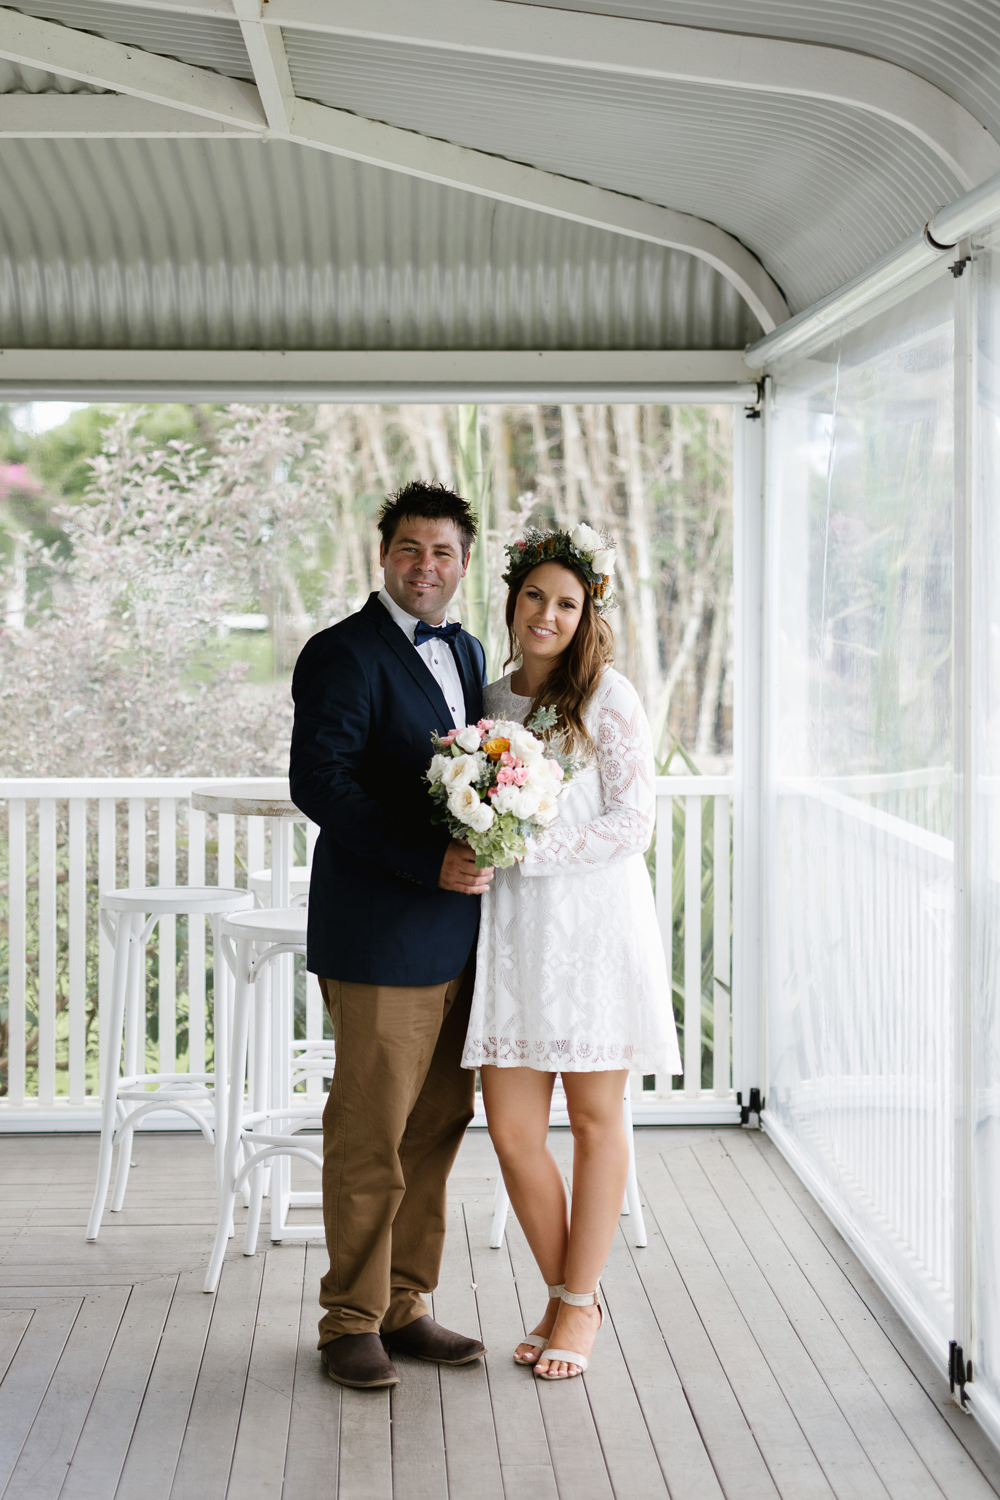 073-Byron-Bay-Wedding-Photographer-Carly-Tia-Photography.jpg